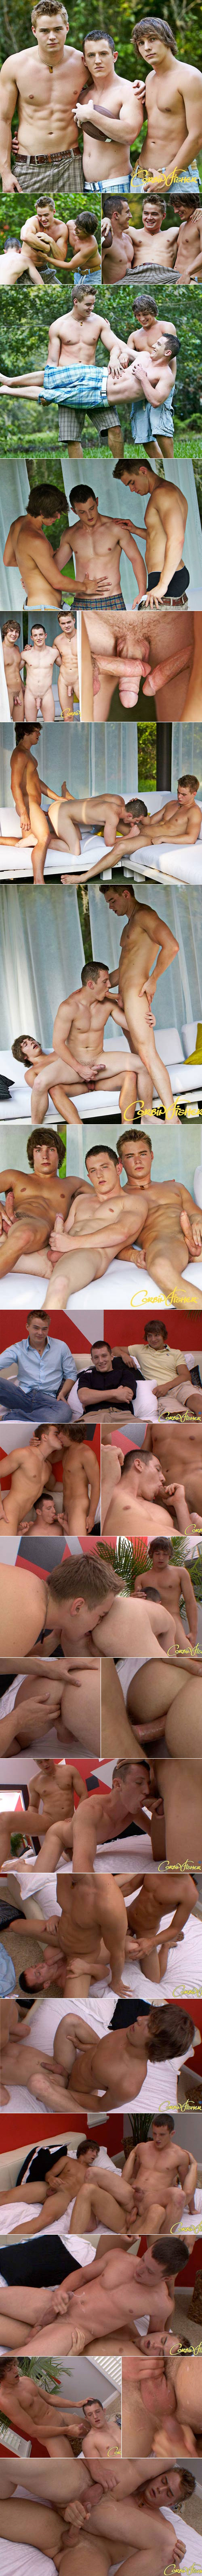 CorbinFisher: Keith gets tag teamed by Elijah and Connor